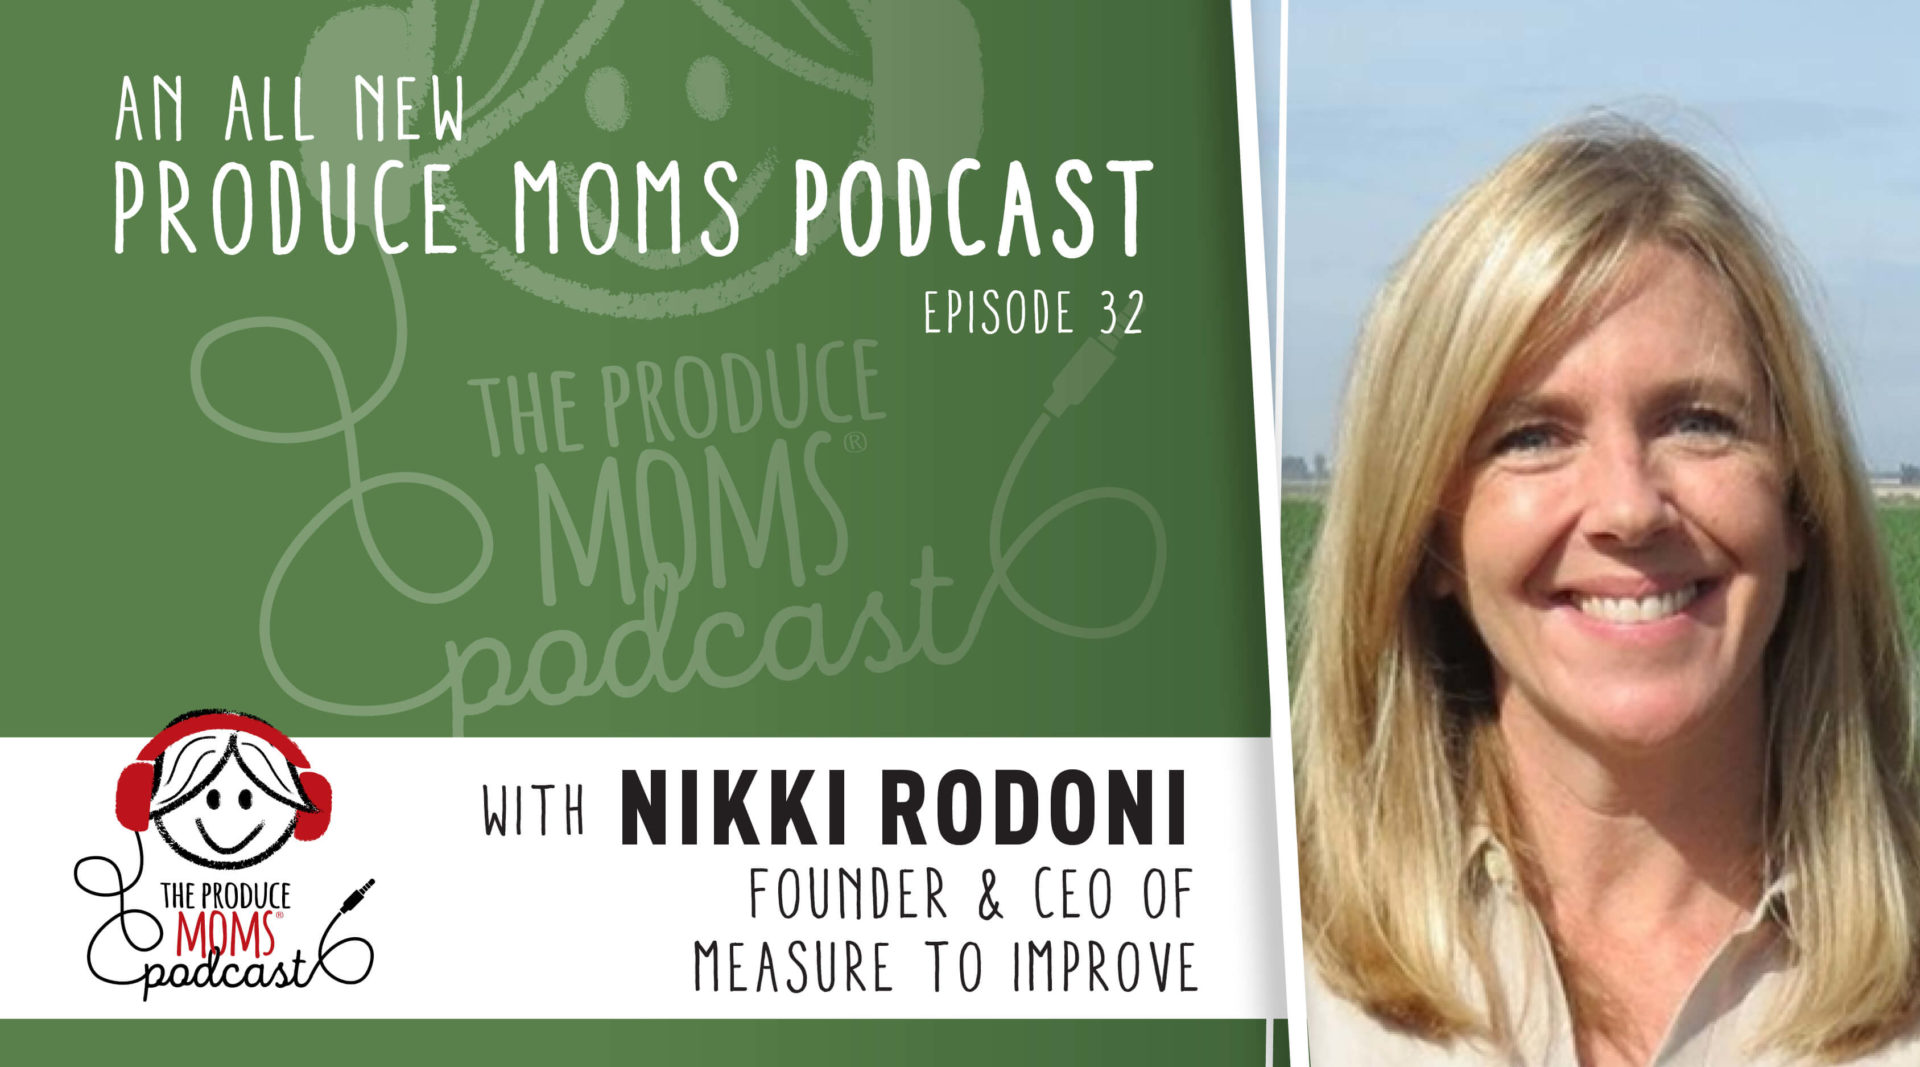 Episode 32: Sustainability for a Healthier Planet with Nikki Rodoni, Founder & CEO of Measure to Improve